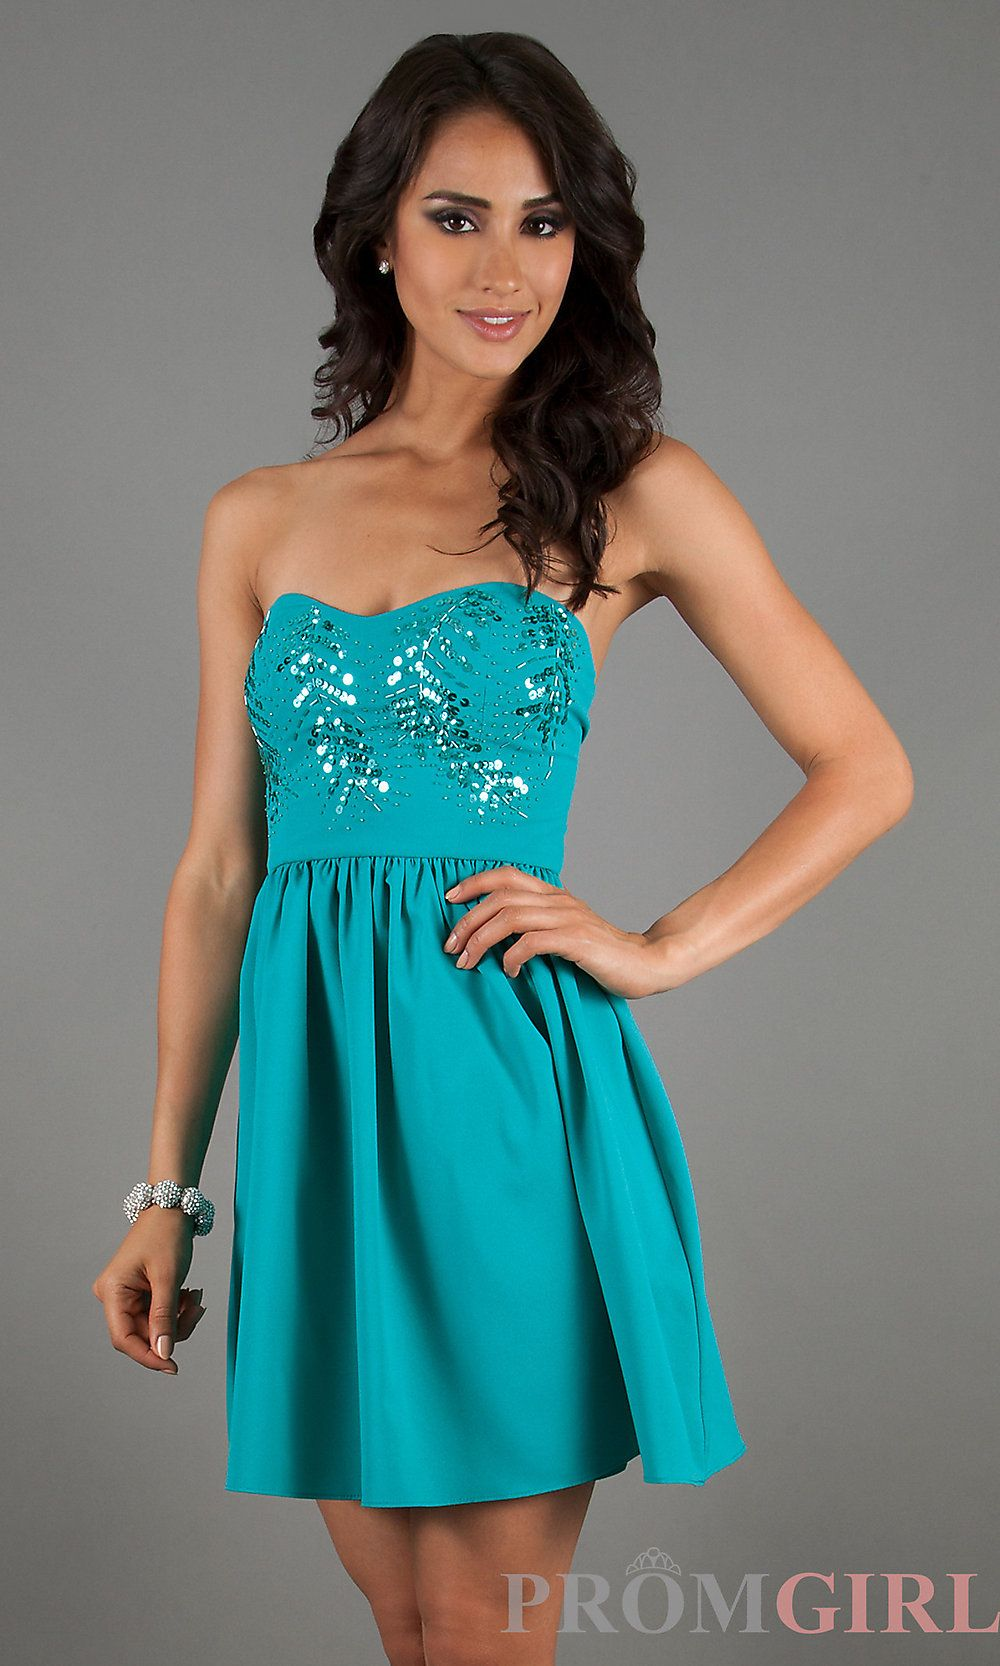 Strapless Short Teal Prom Dress, Short Sequin Dress- PromGirl $99 ...